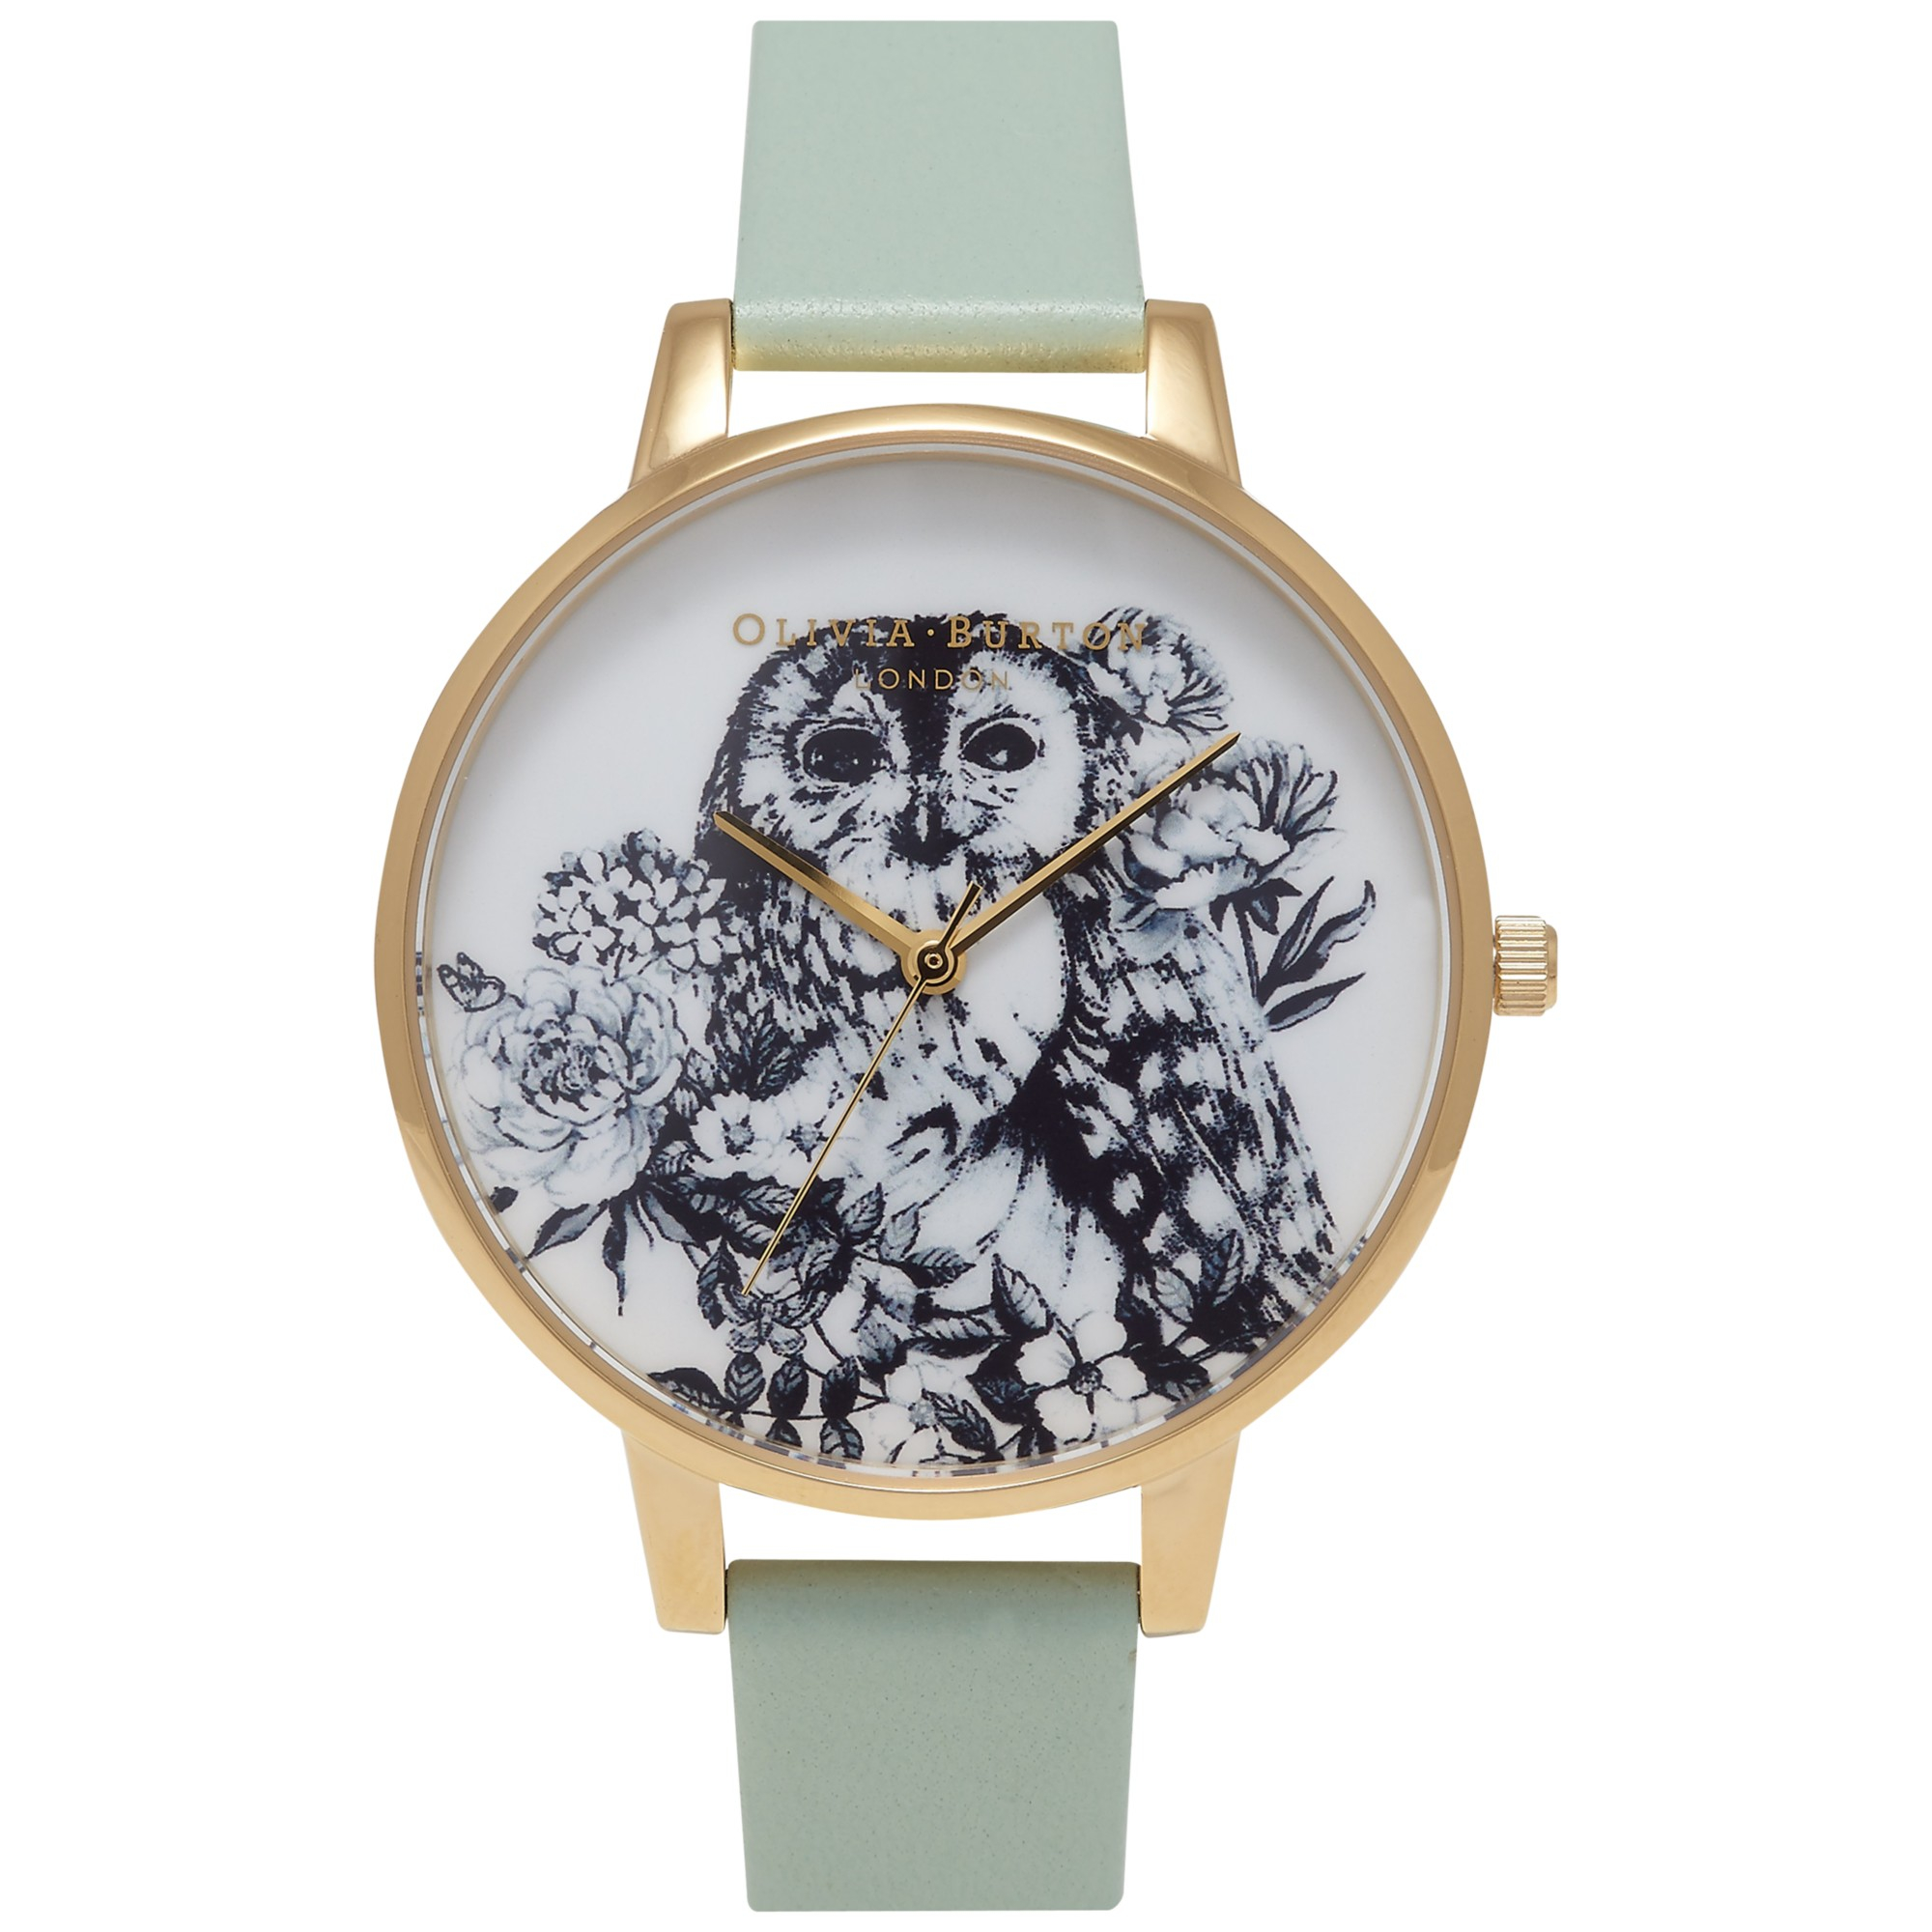 custom you kitten me shoppers wathes watches the fab are collections designed lively right lovers watch animal